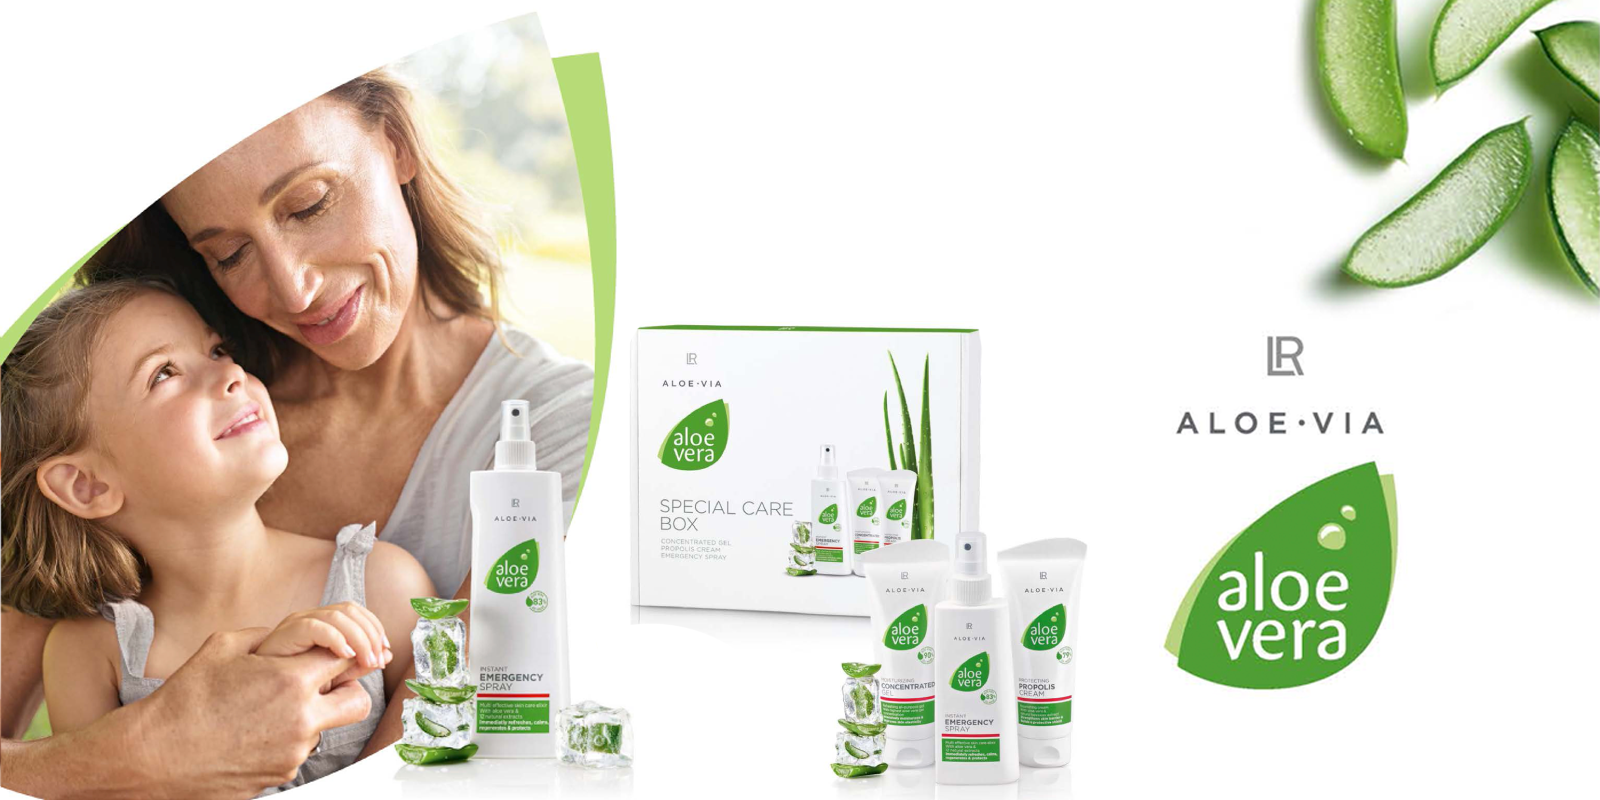 LR ALOE VIA Special care producten